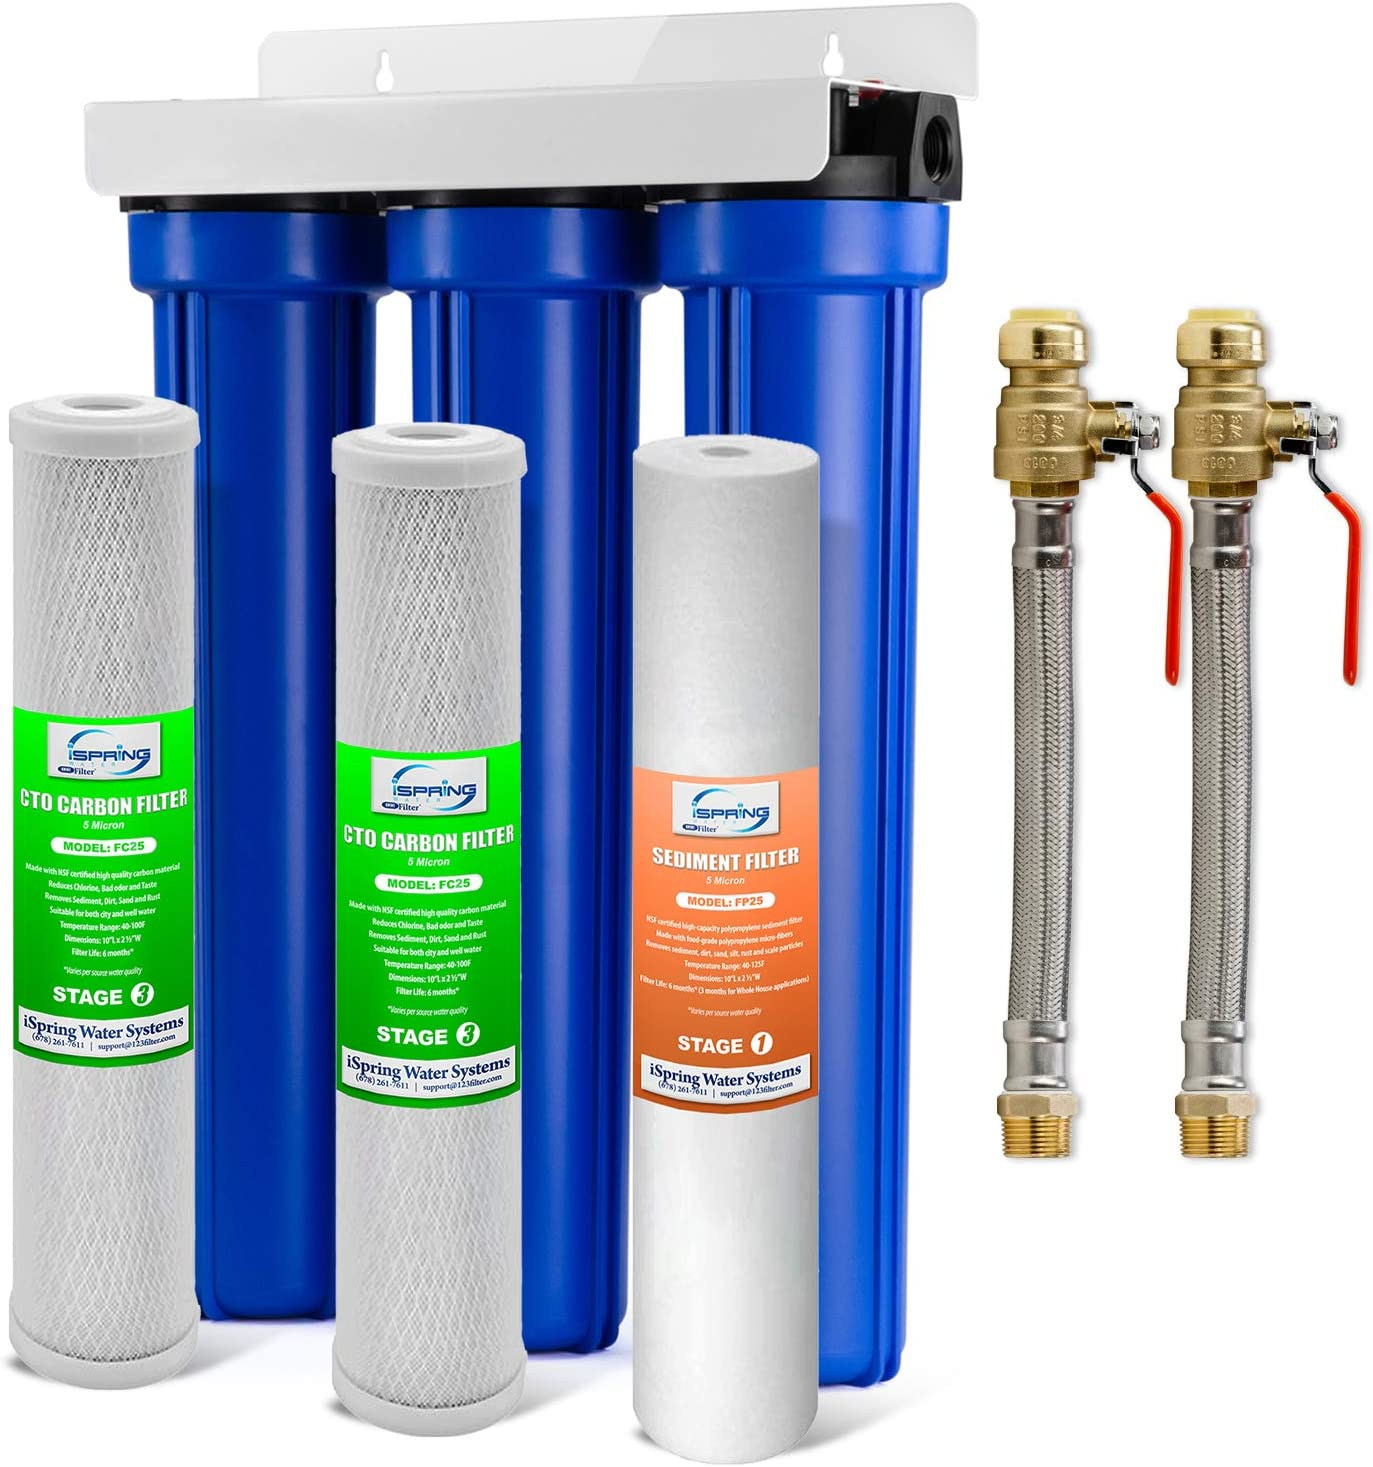 iSpring Max 74% OFF WCB32O+AHPF12MNPT12X2 3-Stage Whole House Safety and trust Filtrati Water